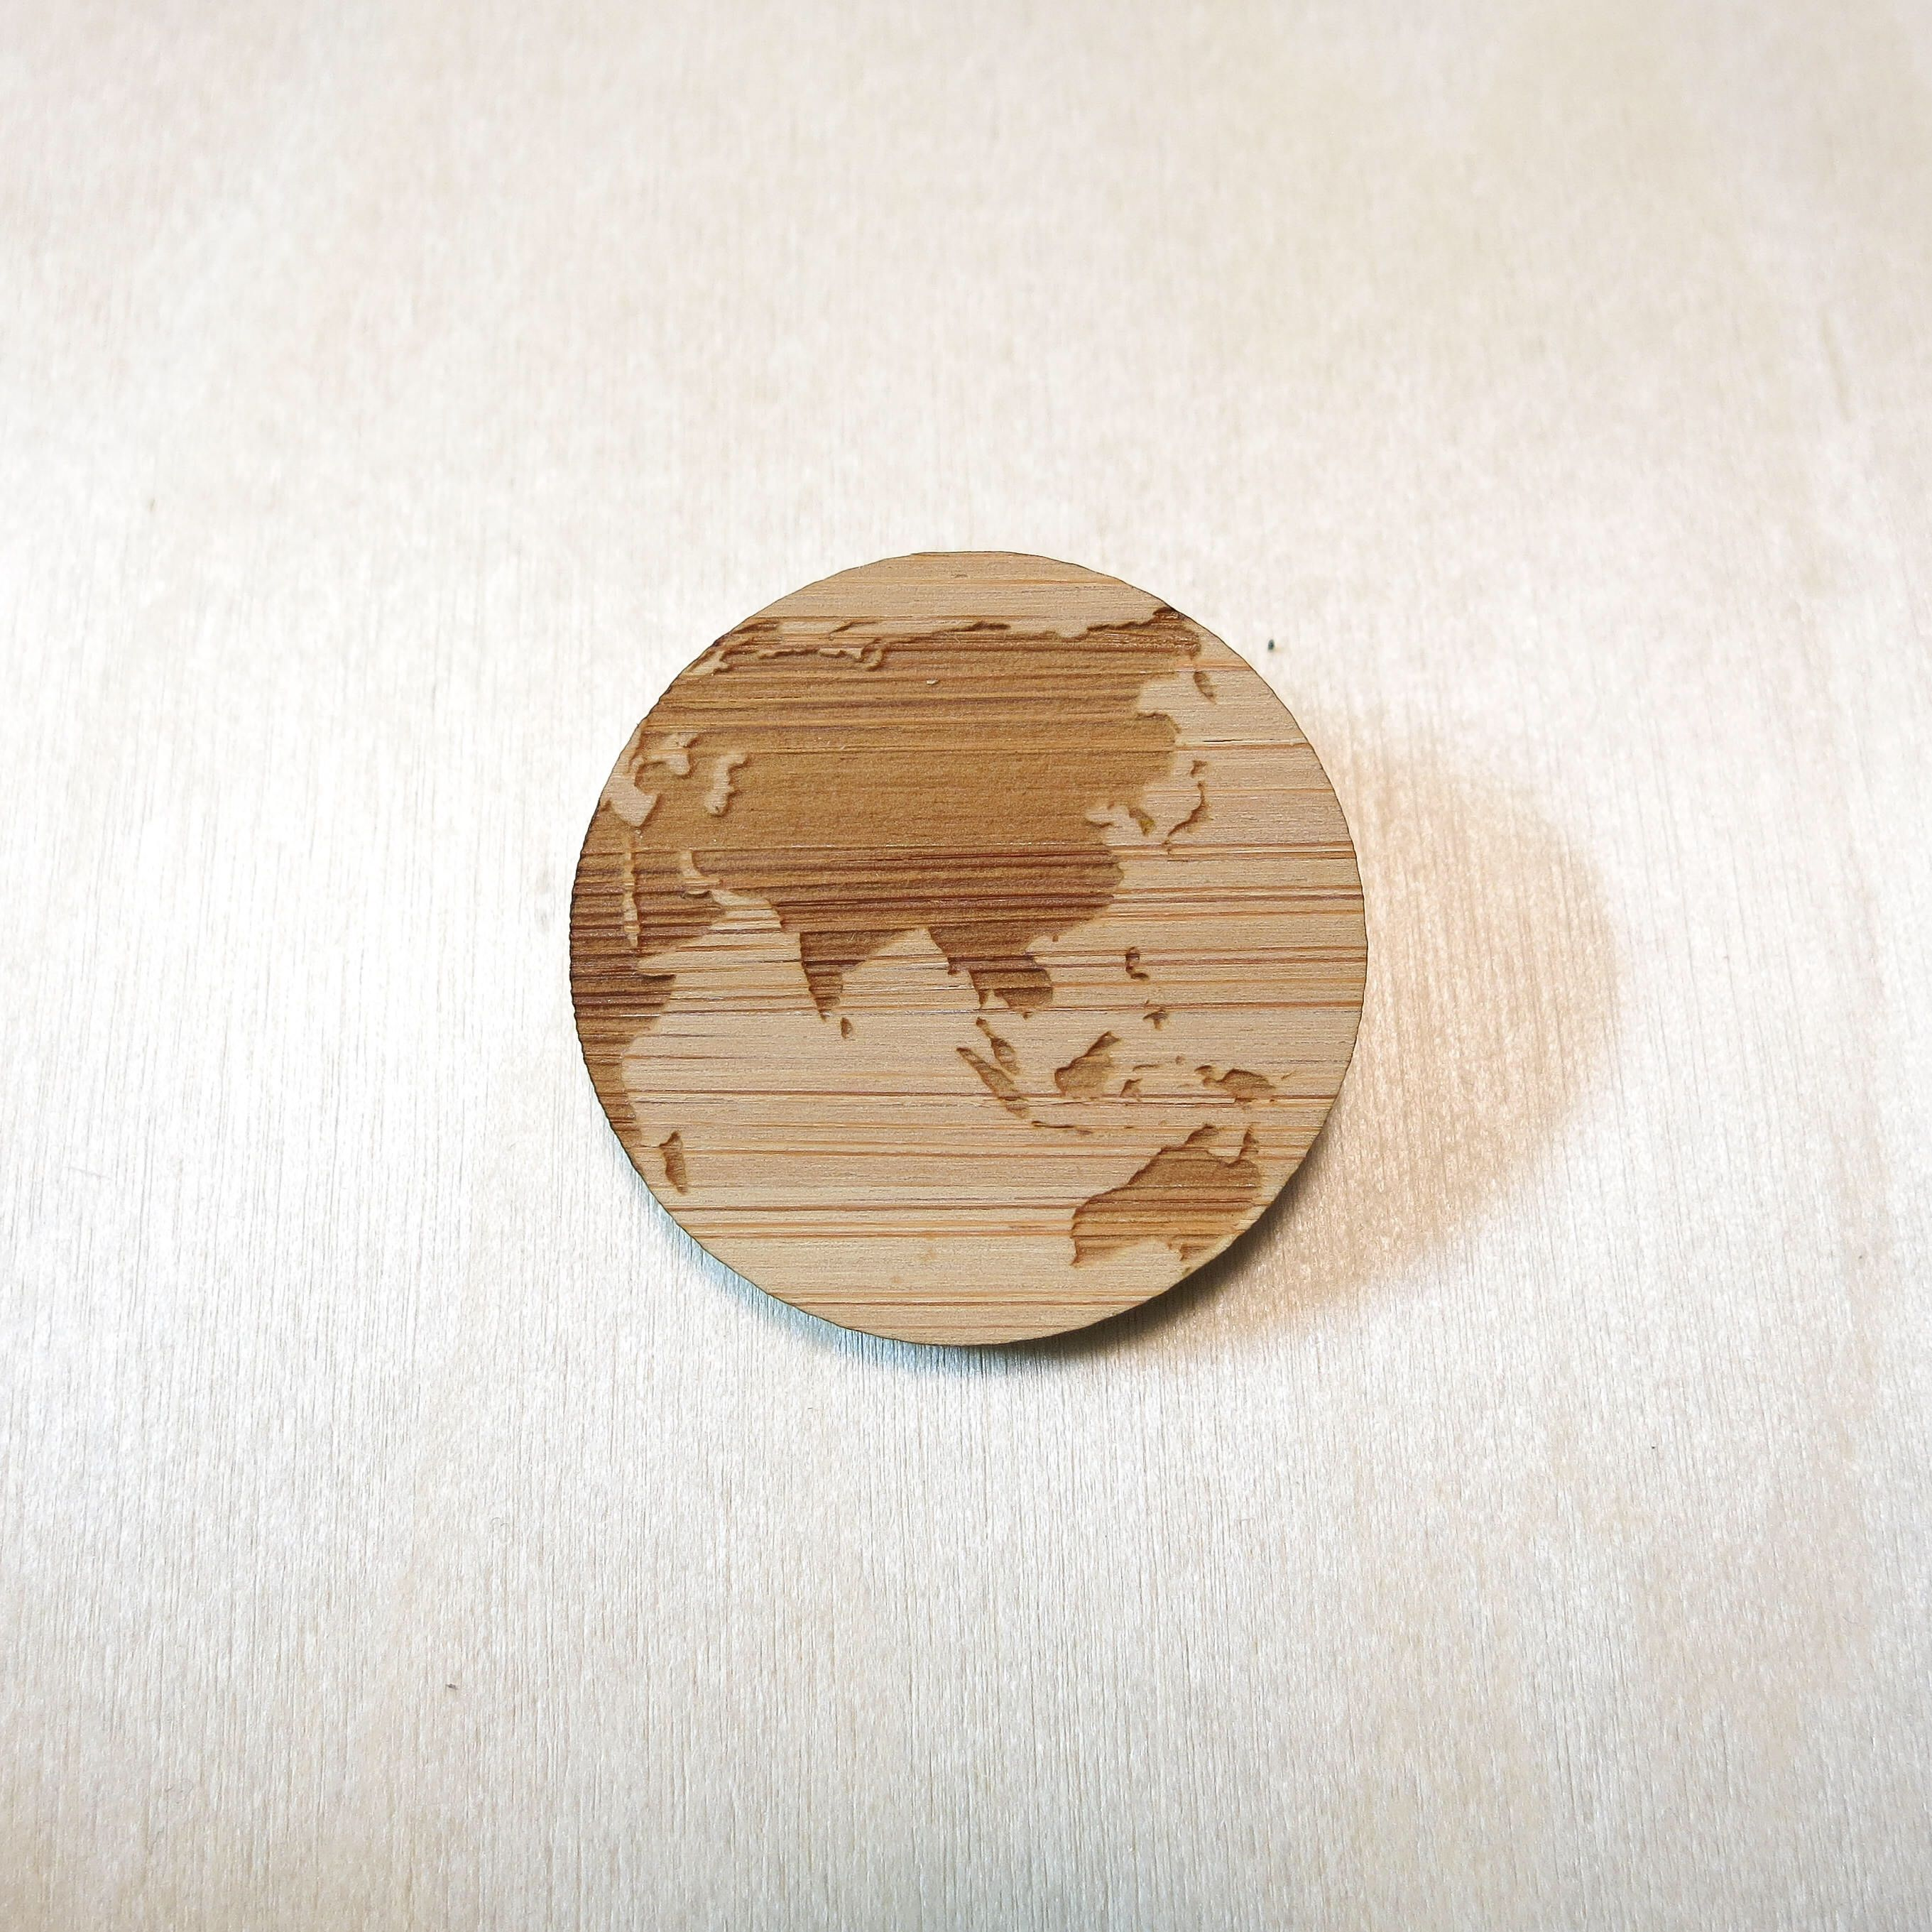 Asia pin australia brooch oceania pin world map pin eco friendly asia pin australia brooch oceania pin world map pin eco friendly bamboo eco jewellery wood brooch wood pin sustainable jewelry laser cut map gumiabroncs Images